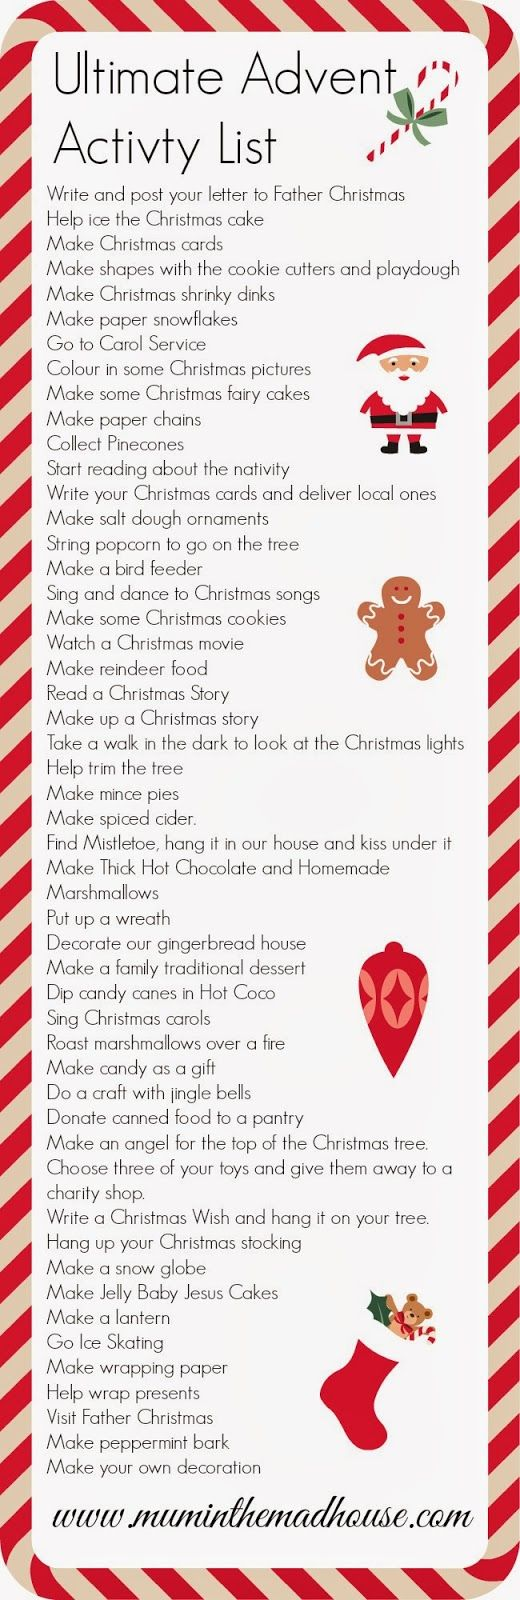 Activities for advent calendar